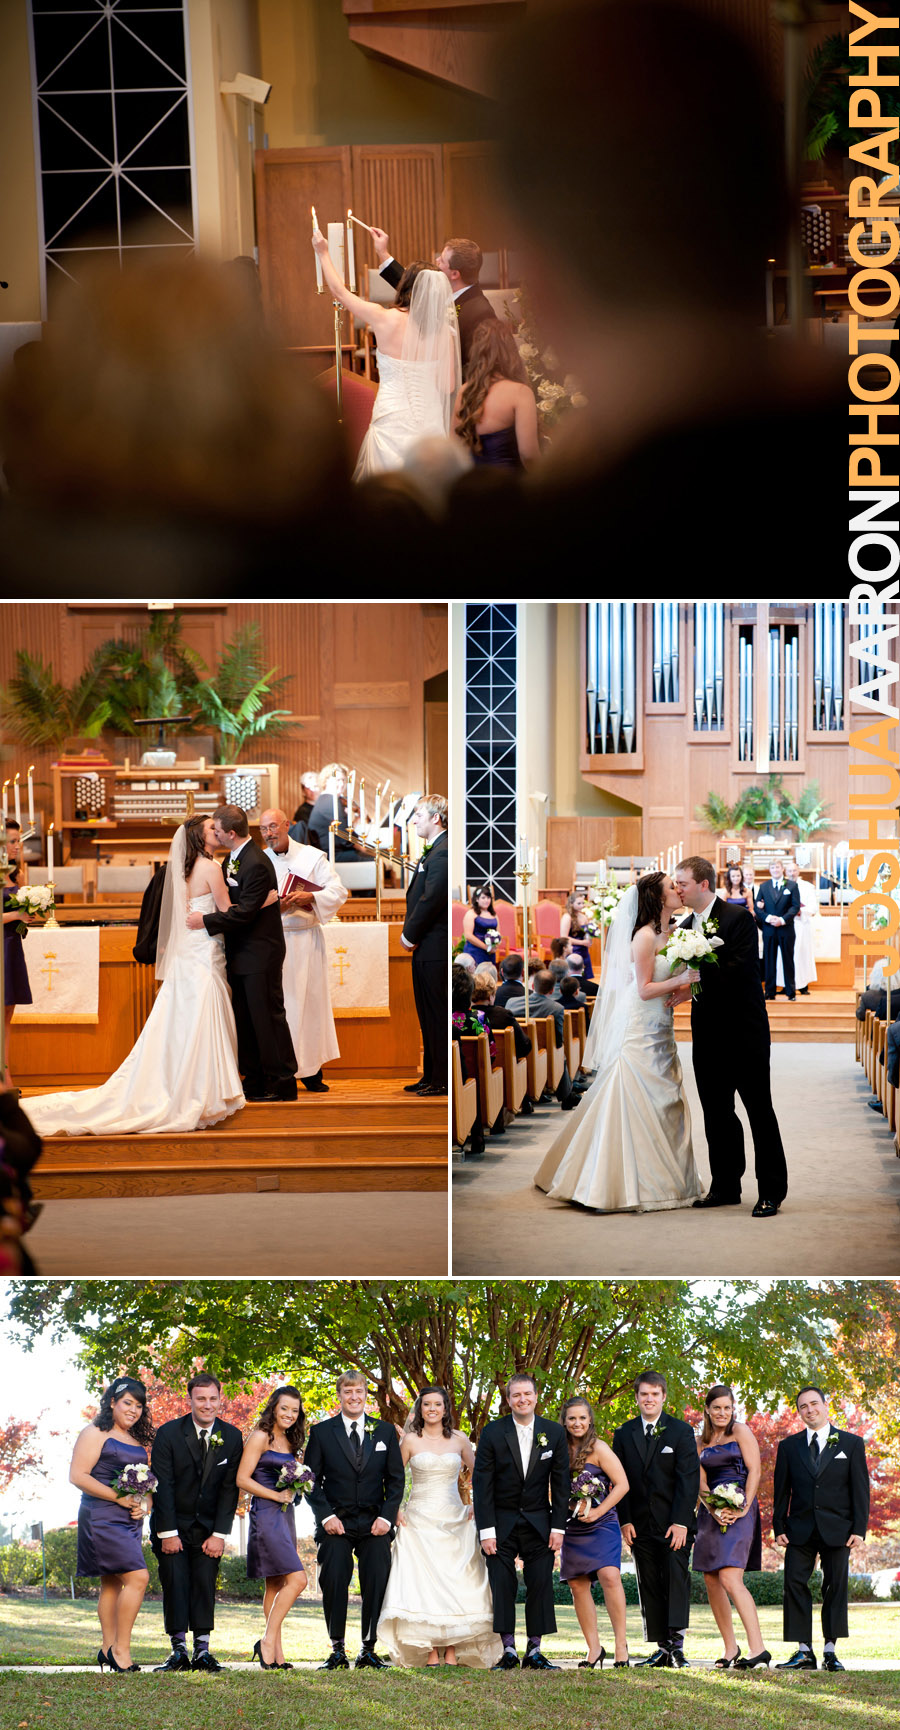 Kim Jeremy Wedding at Union United Methodist